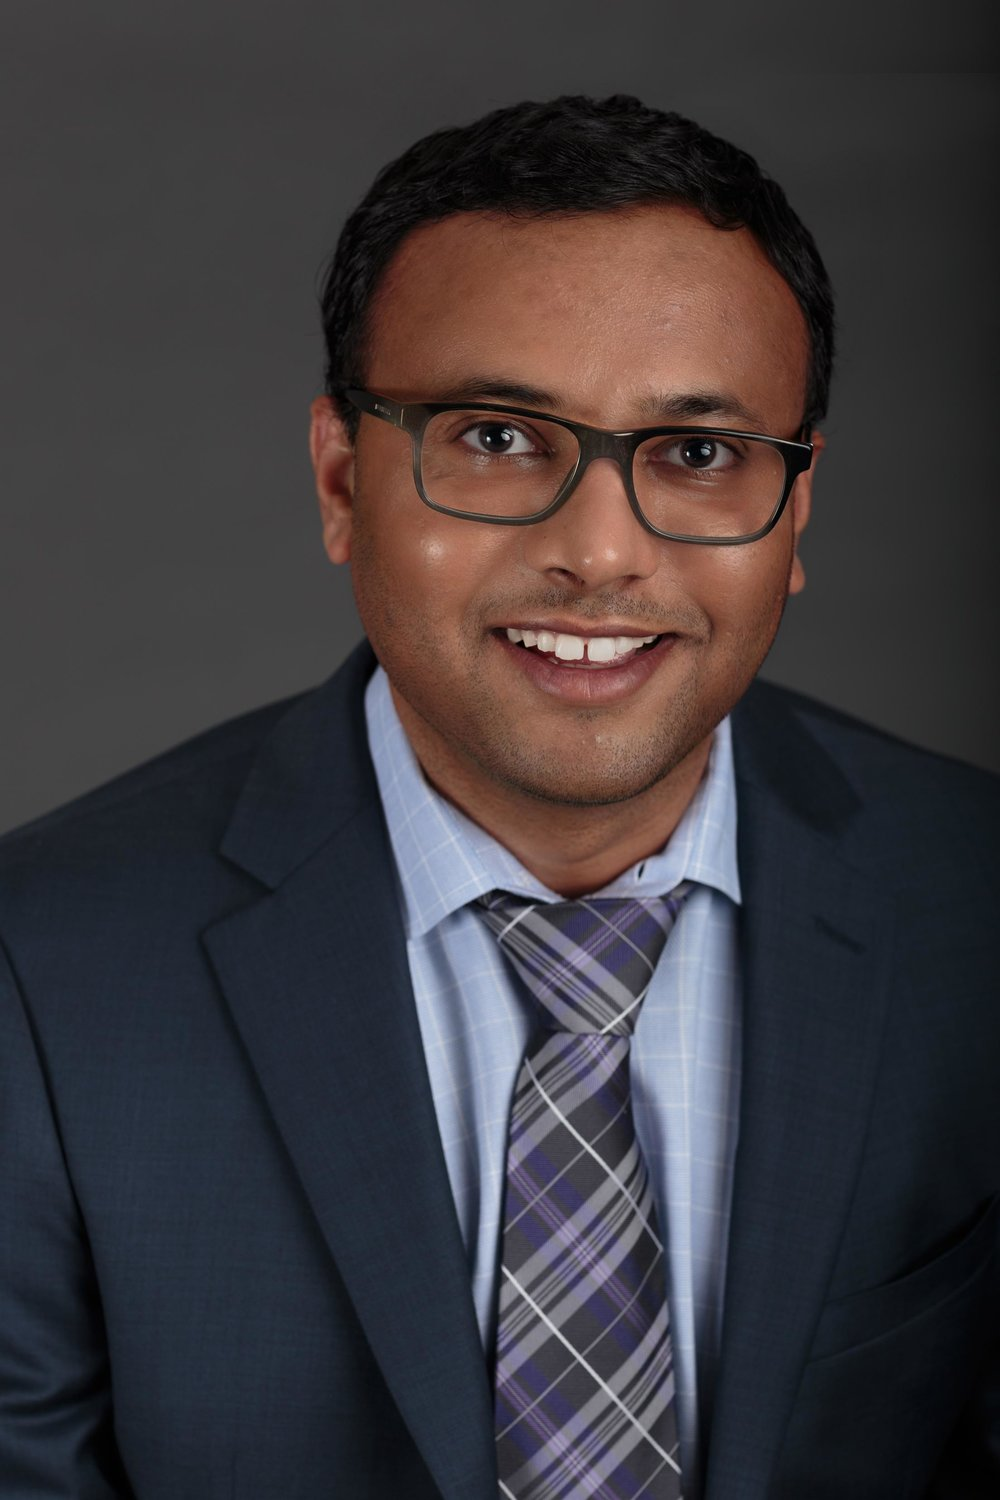 Paul Patel - Founding Partner